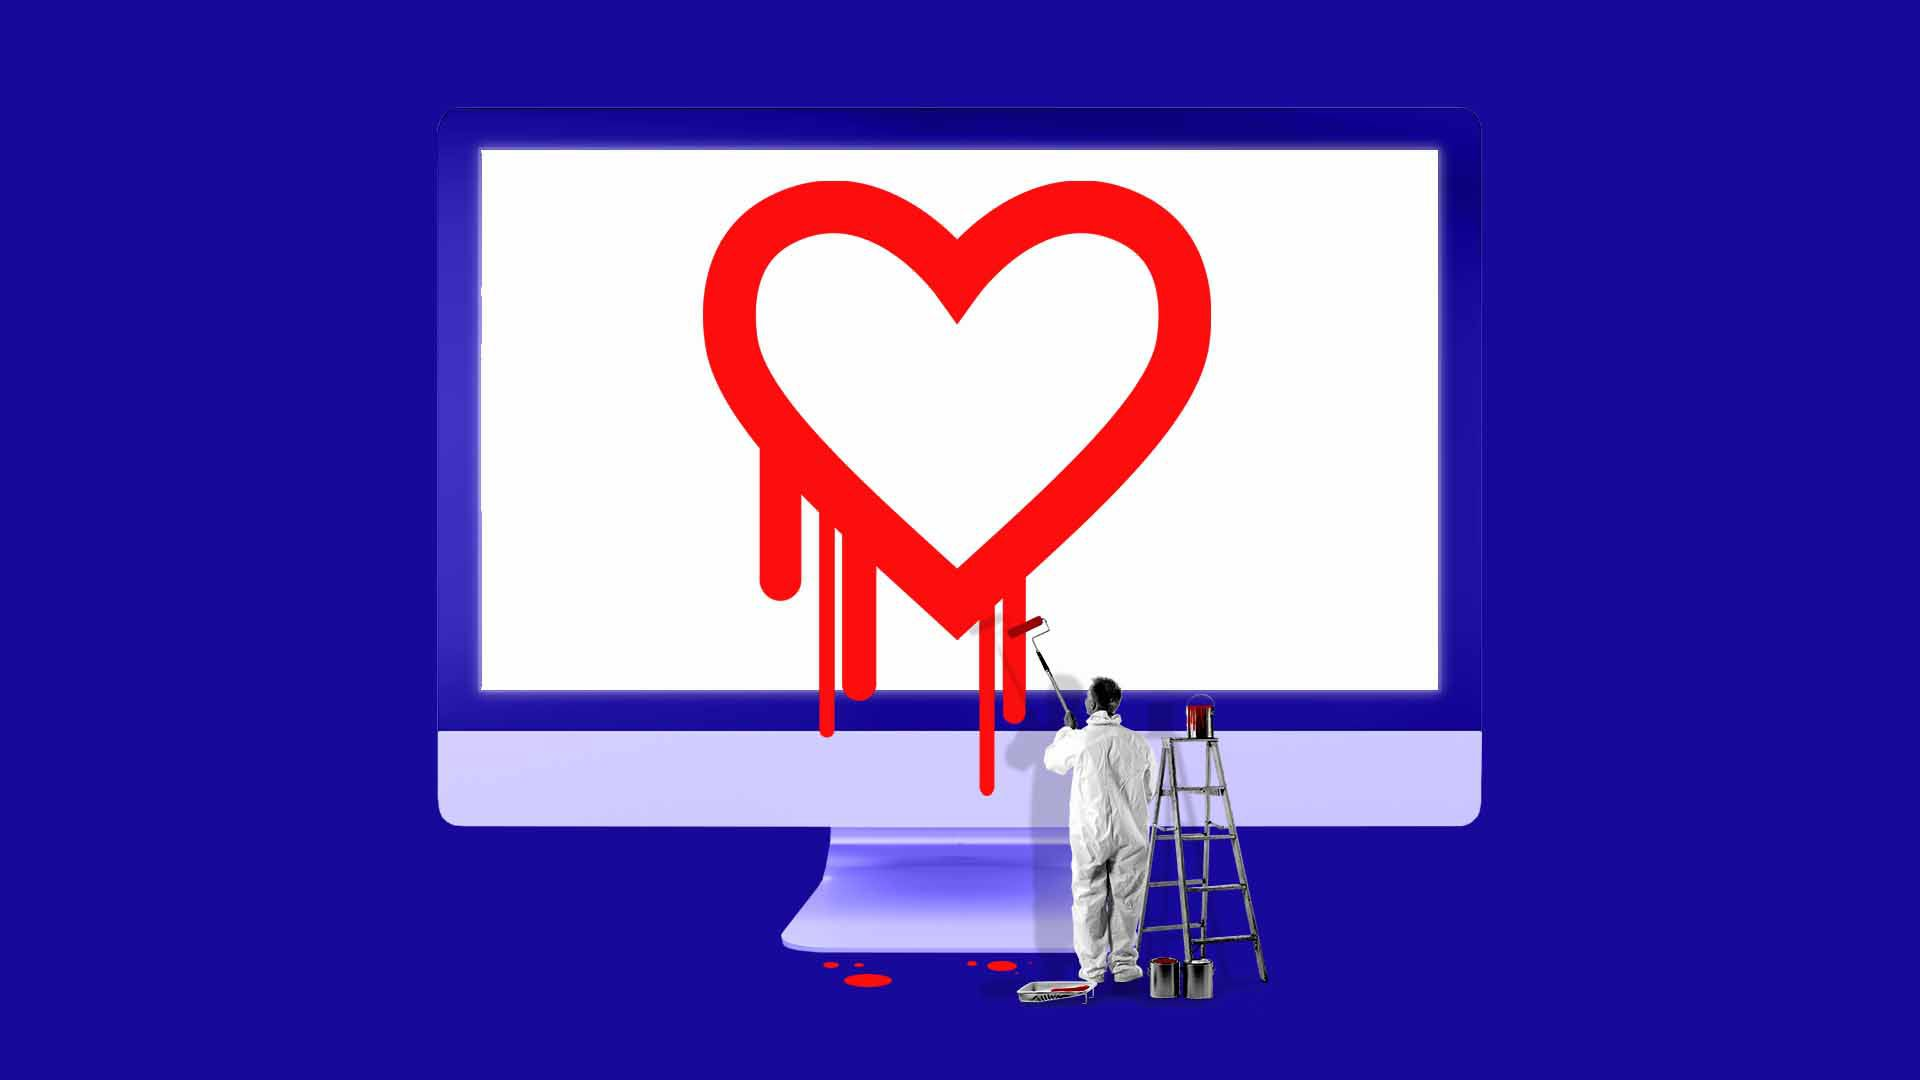 Illustration of a tiny painter painting the Heartbleed logo on a desktop monitor